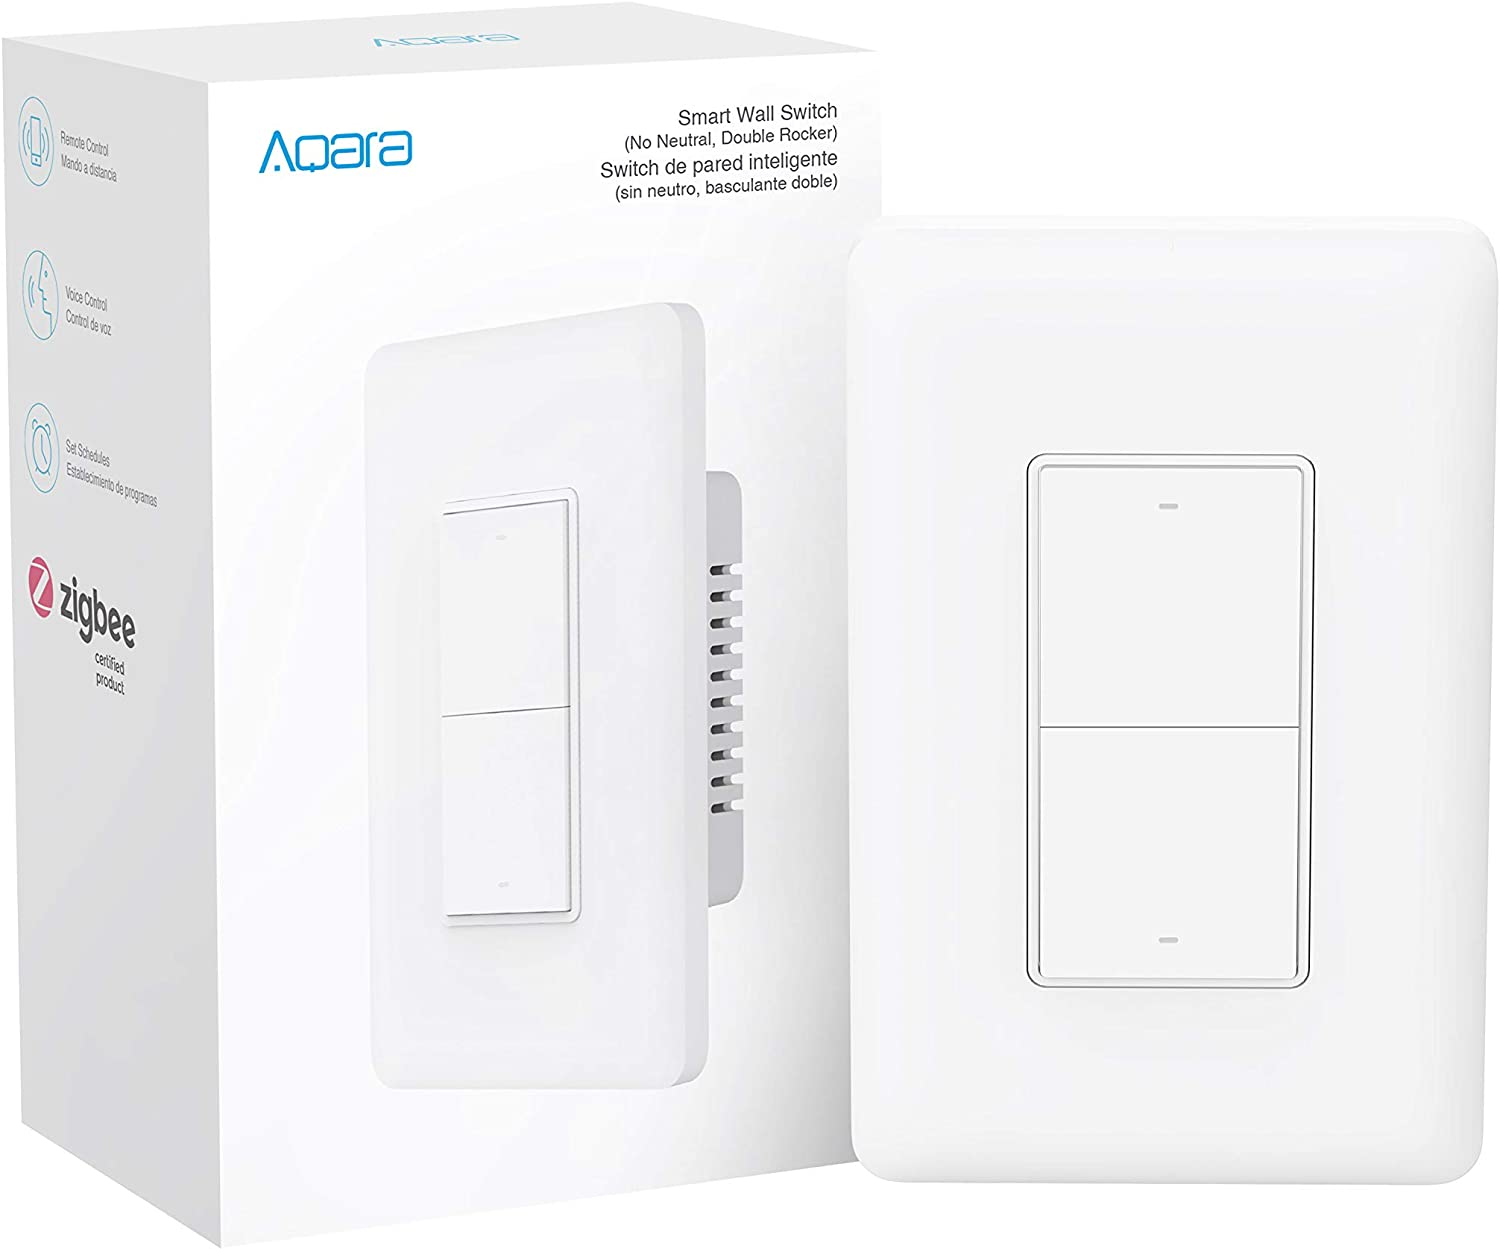 Aqara Smart Wall Switch (No Neutral, Double Rocker), Requires AQARA HUB, Zigbee Switch, Remote Control and Set Timer for Home Automation, Compatible with Alexa, Apple HomeKit, Google Assistant